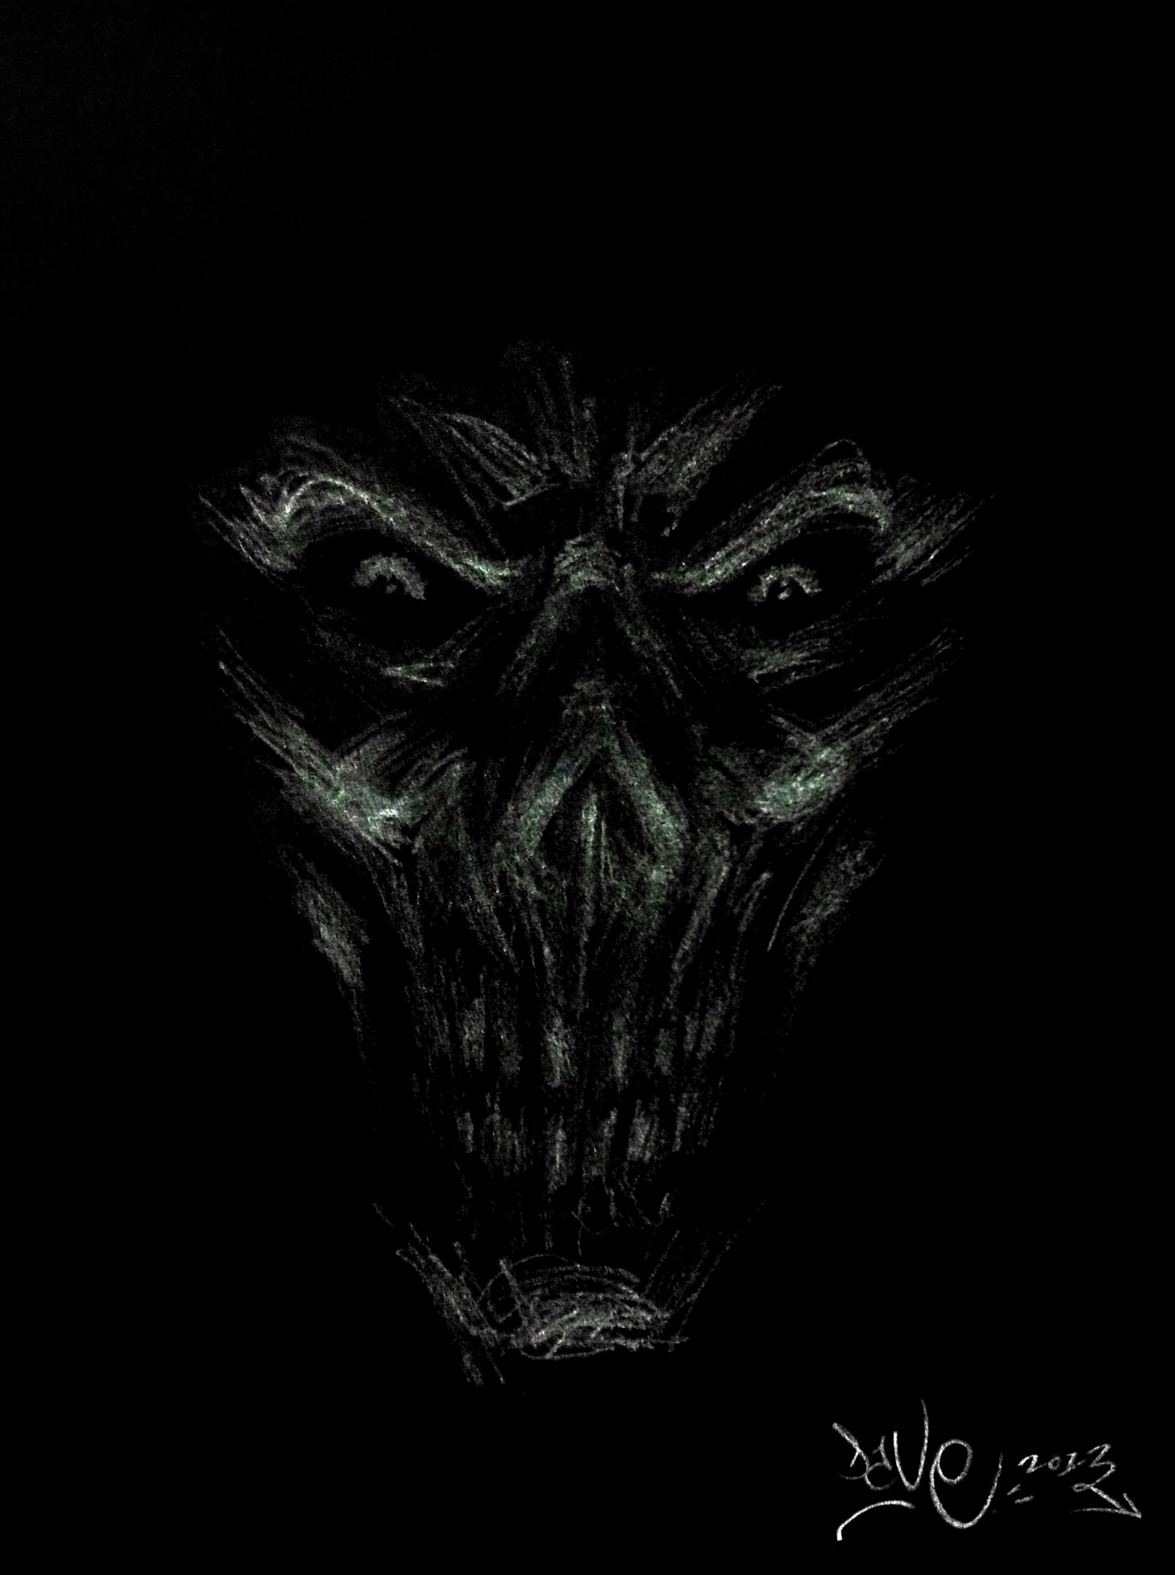 2013 - Black Arts - Demon in Darkness